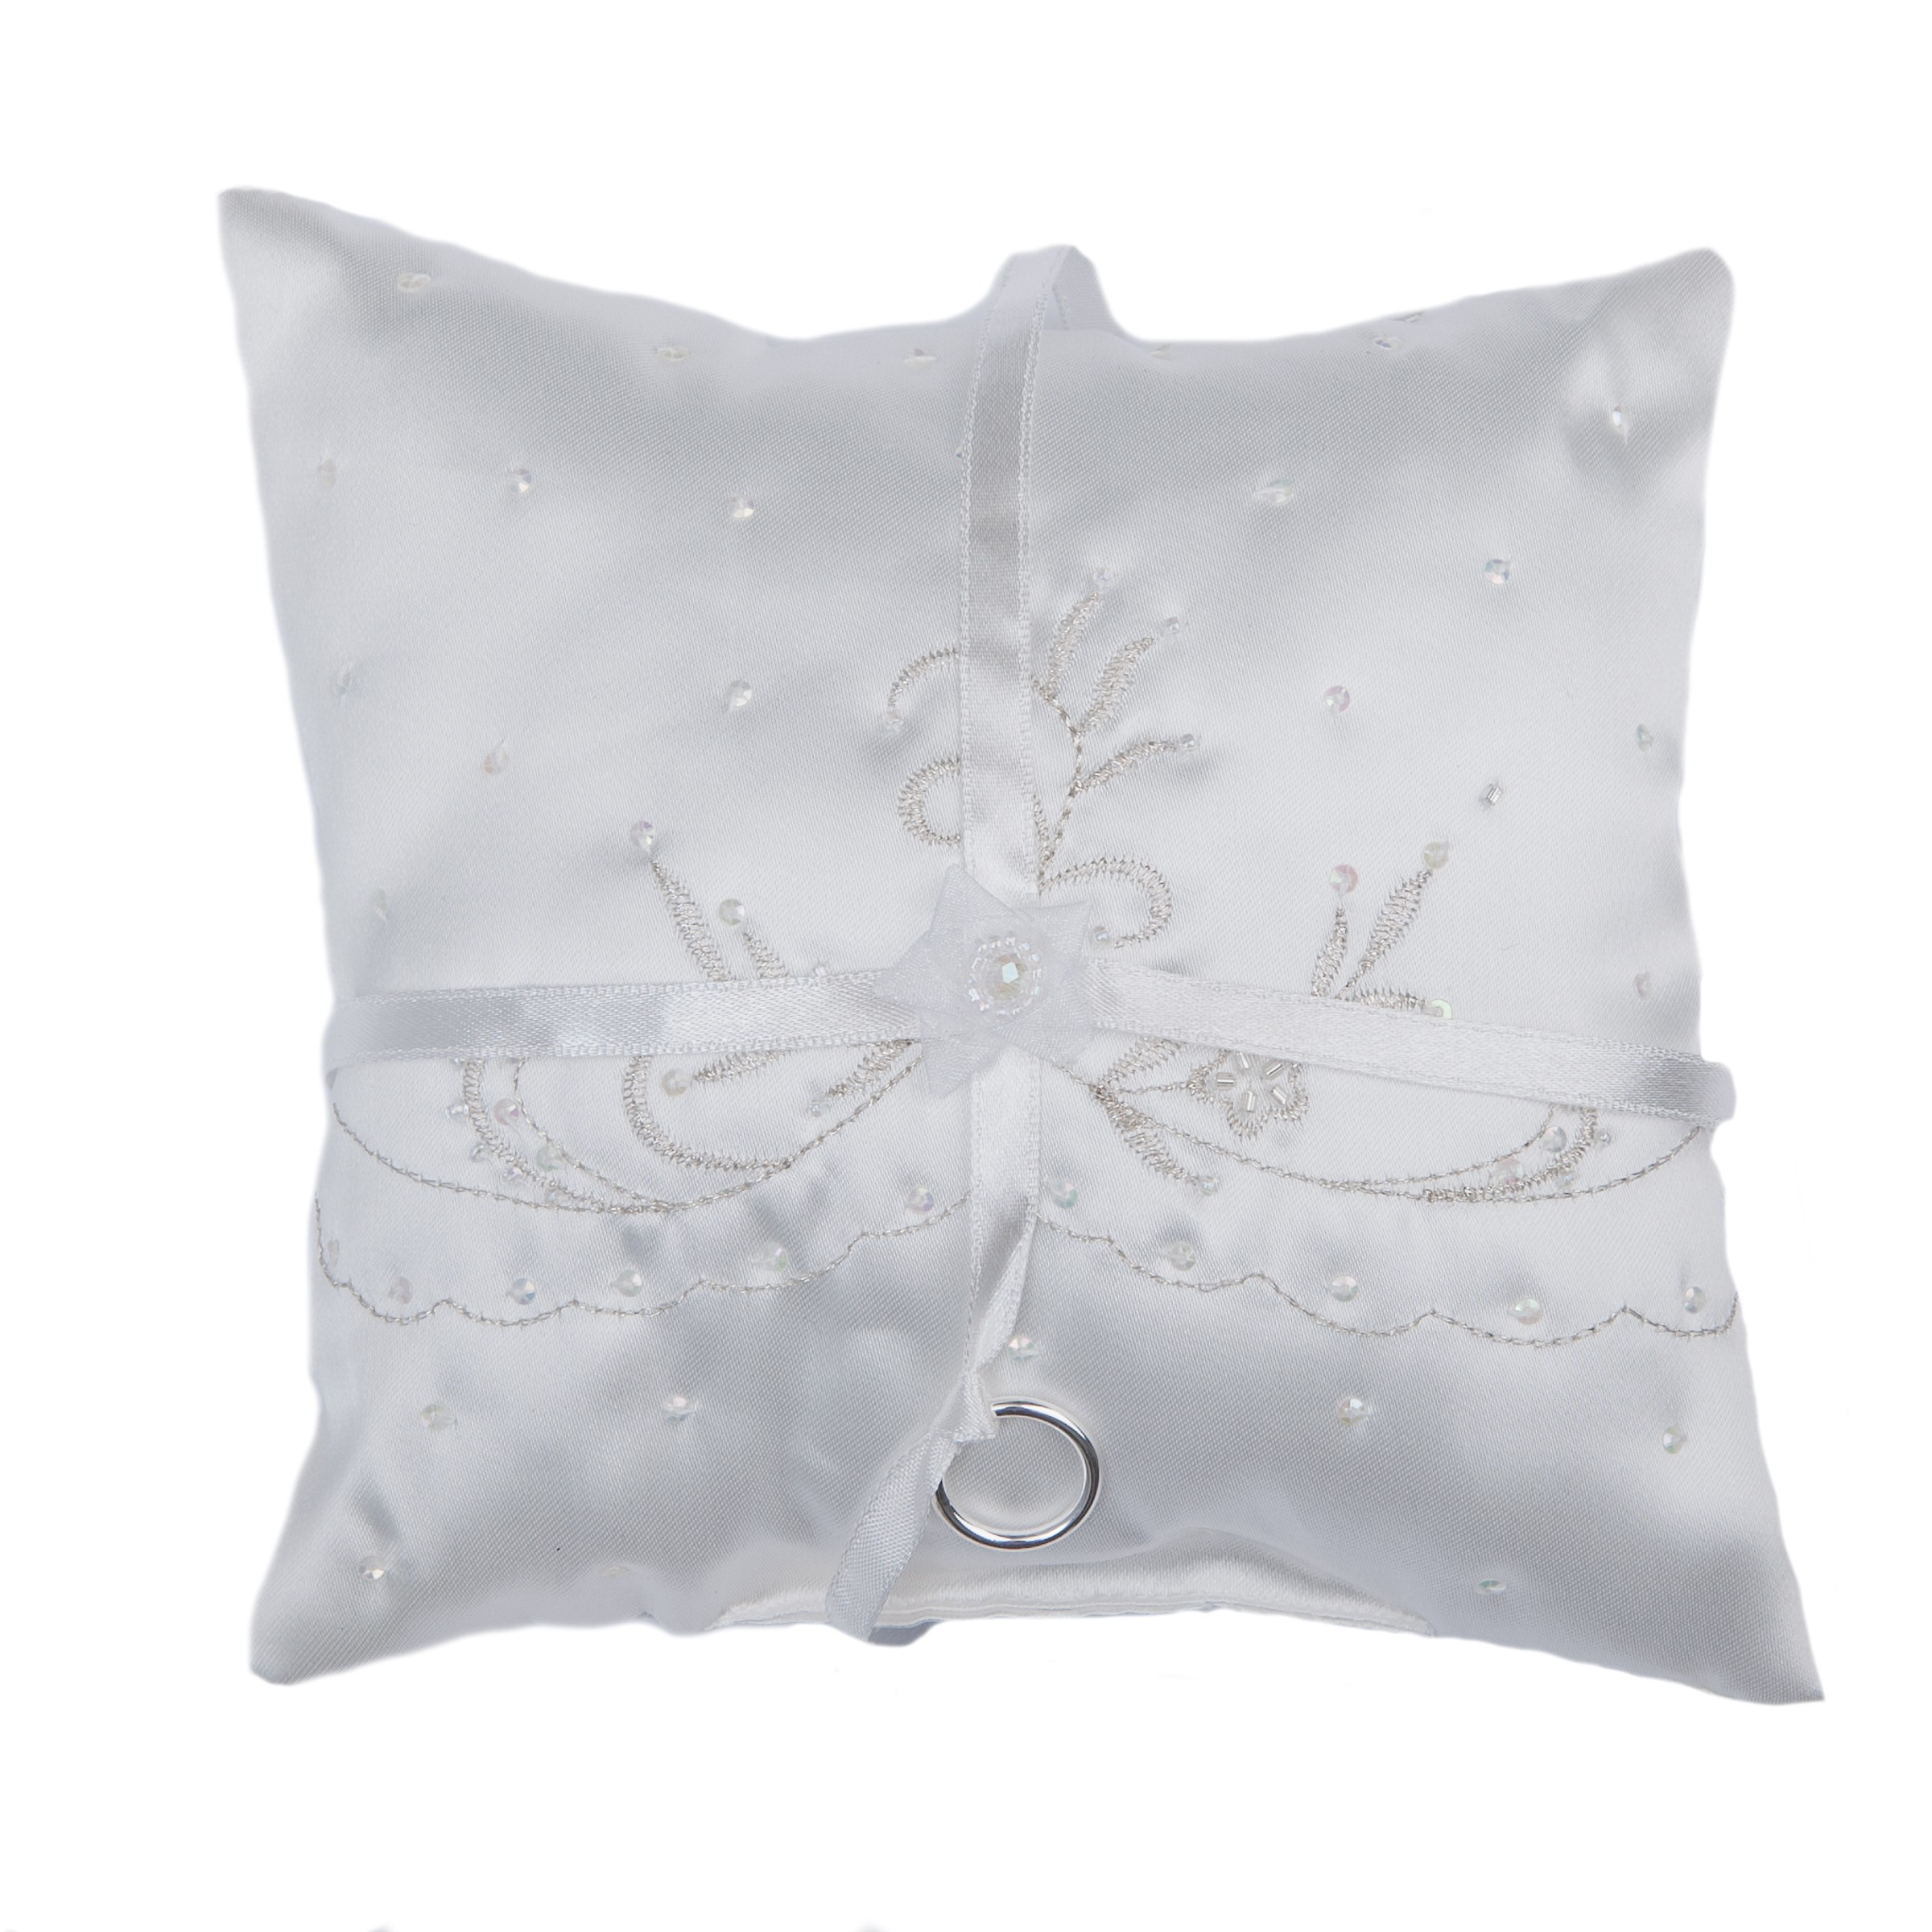 Lily embellished ring cushion